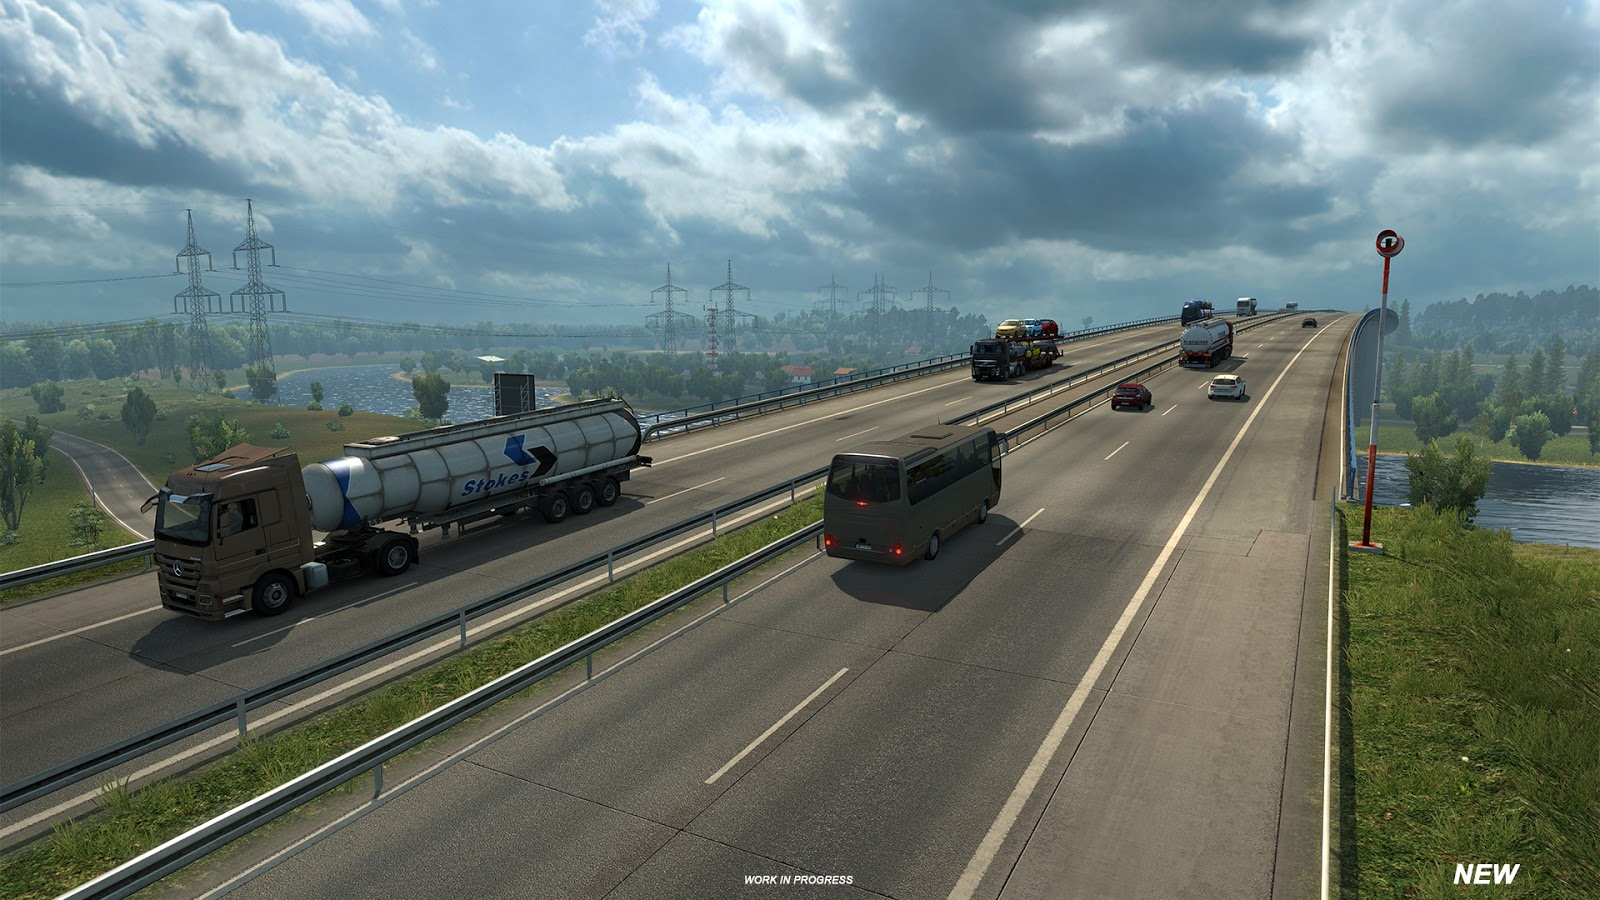 We Have One More Related Cool Picture For You On Euro Truck Simulator 2  Facebook Page, The Result Of A Little Teaser We Were Doing On The Page  Today.